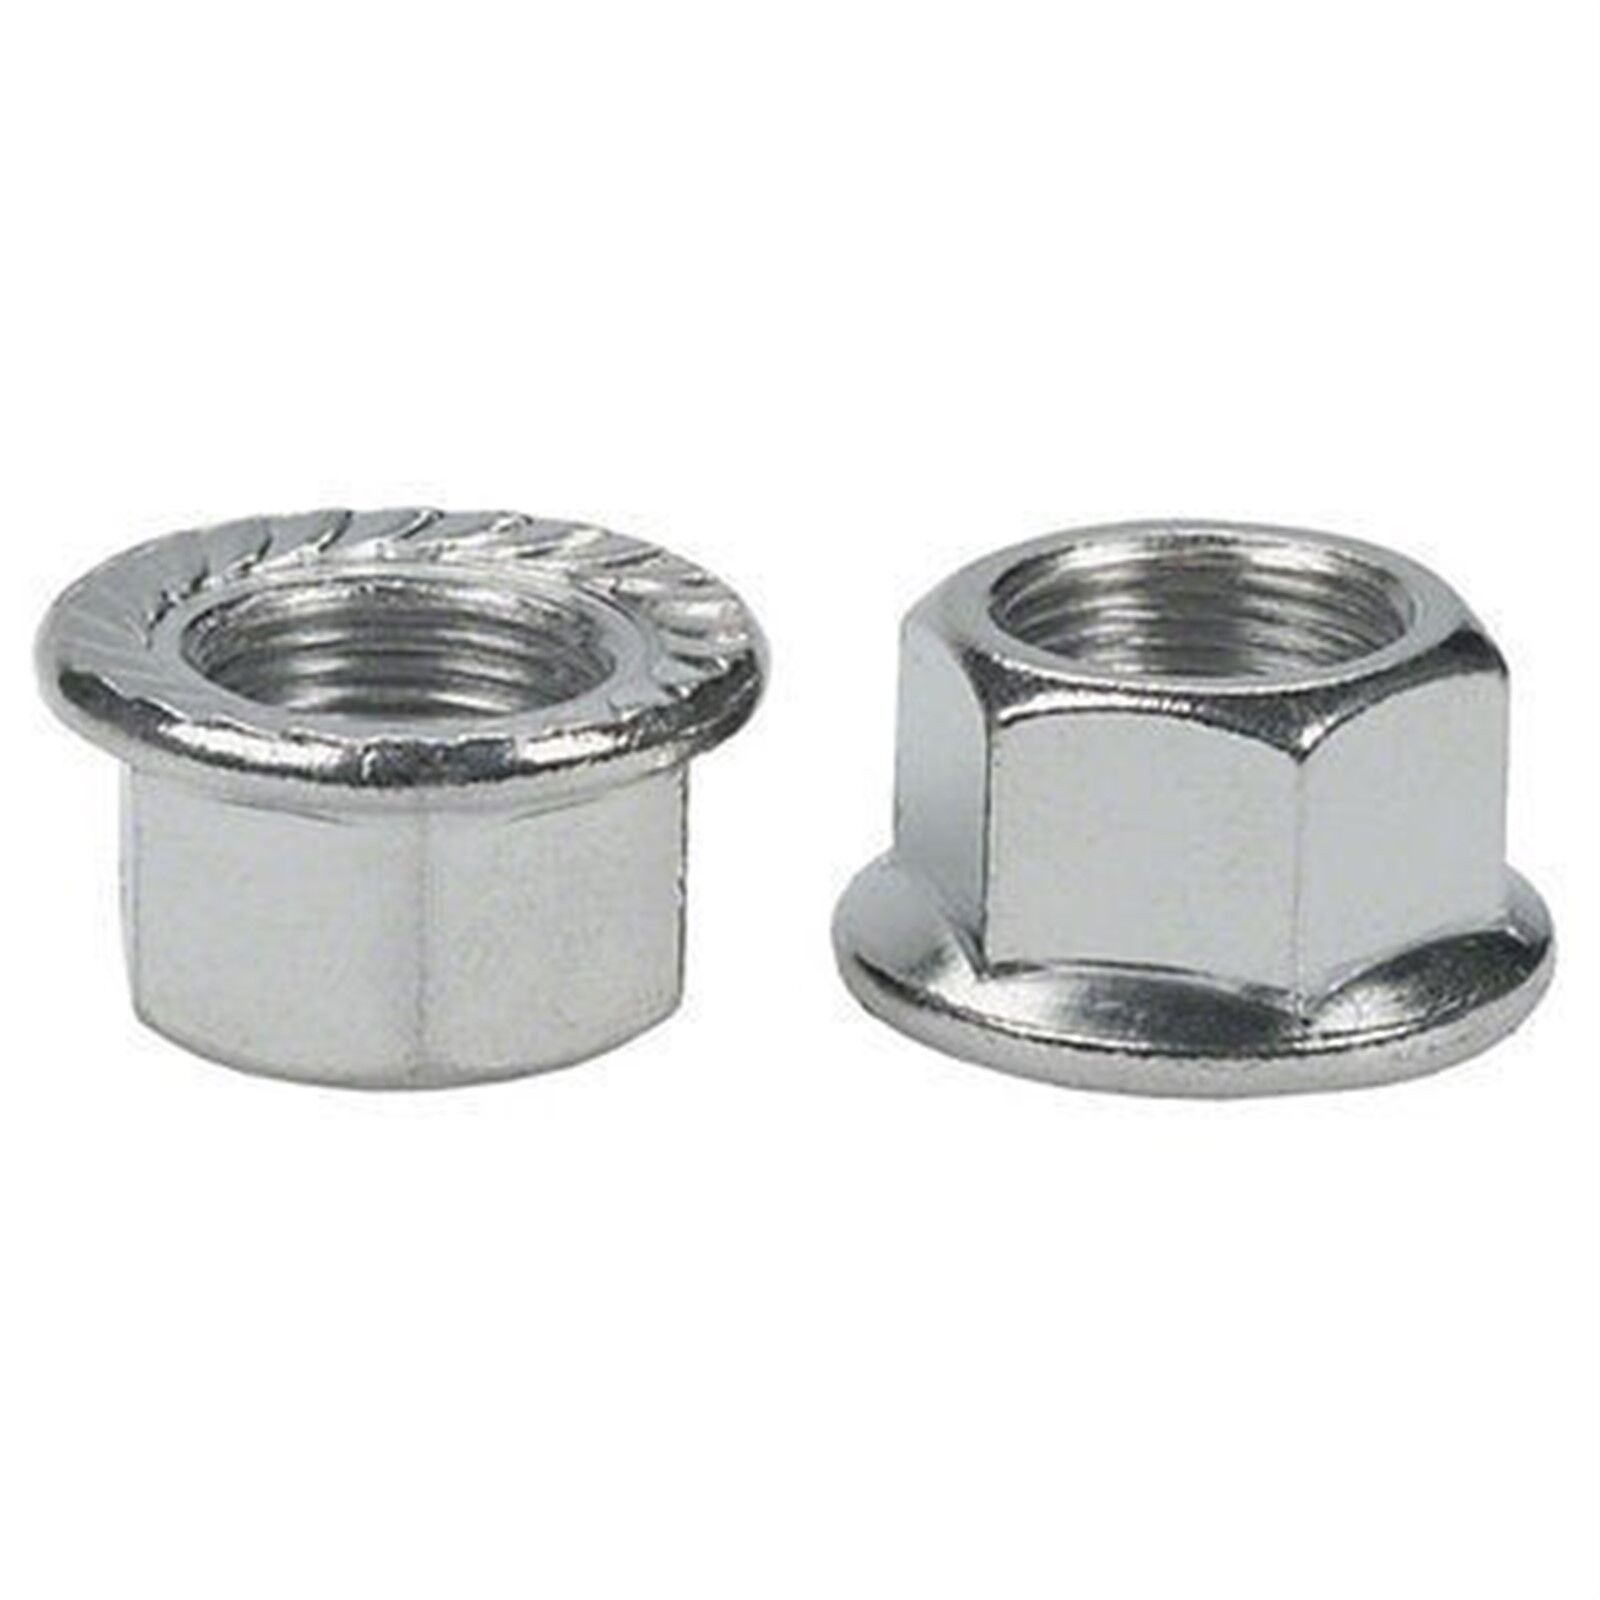 Wheels Manufacturing 10 x 1mm rear Outer Axle Nut